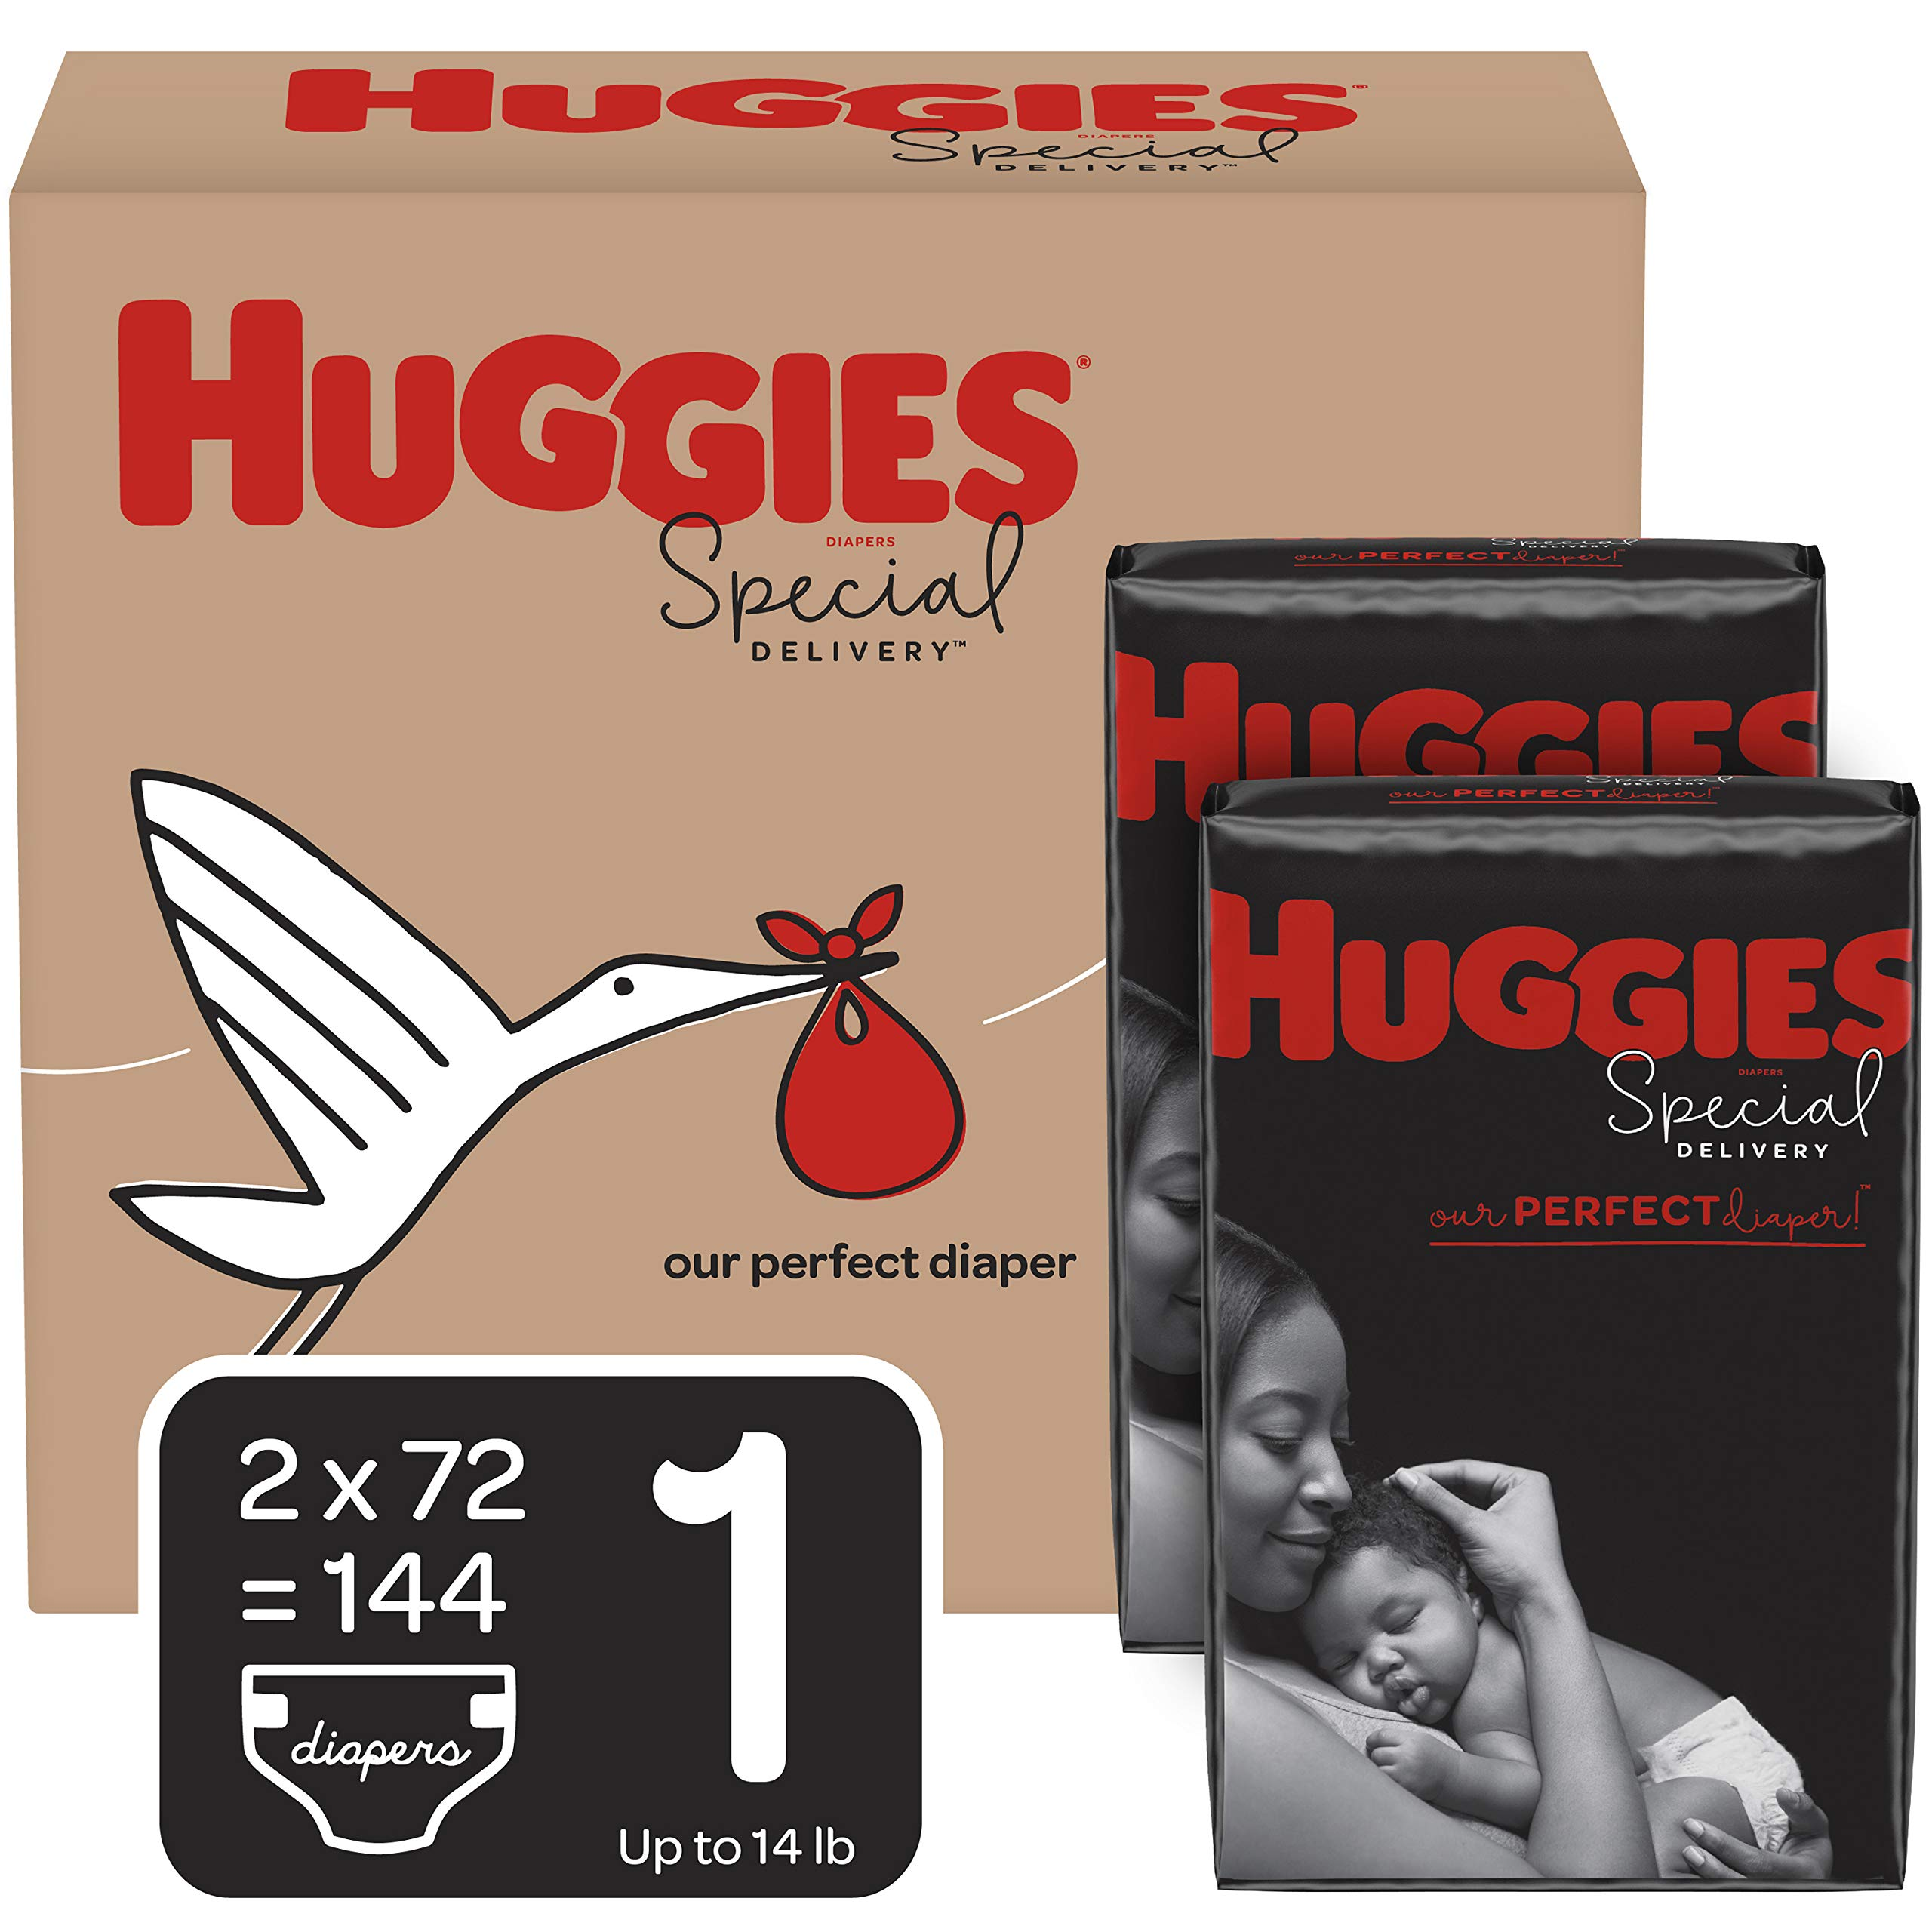 Huggies Special Delivery Hypoallergenic Diapers, Size 1 (8-14 lb.), 144 Ct, One Month Supply by HUGGIES